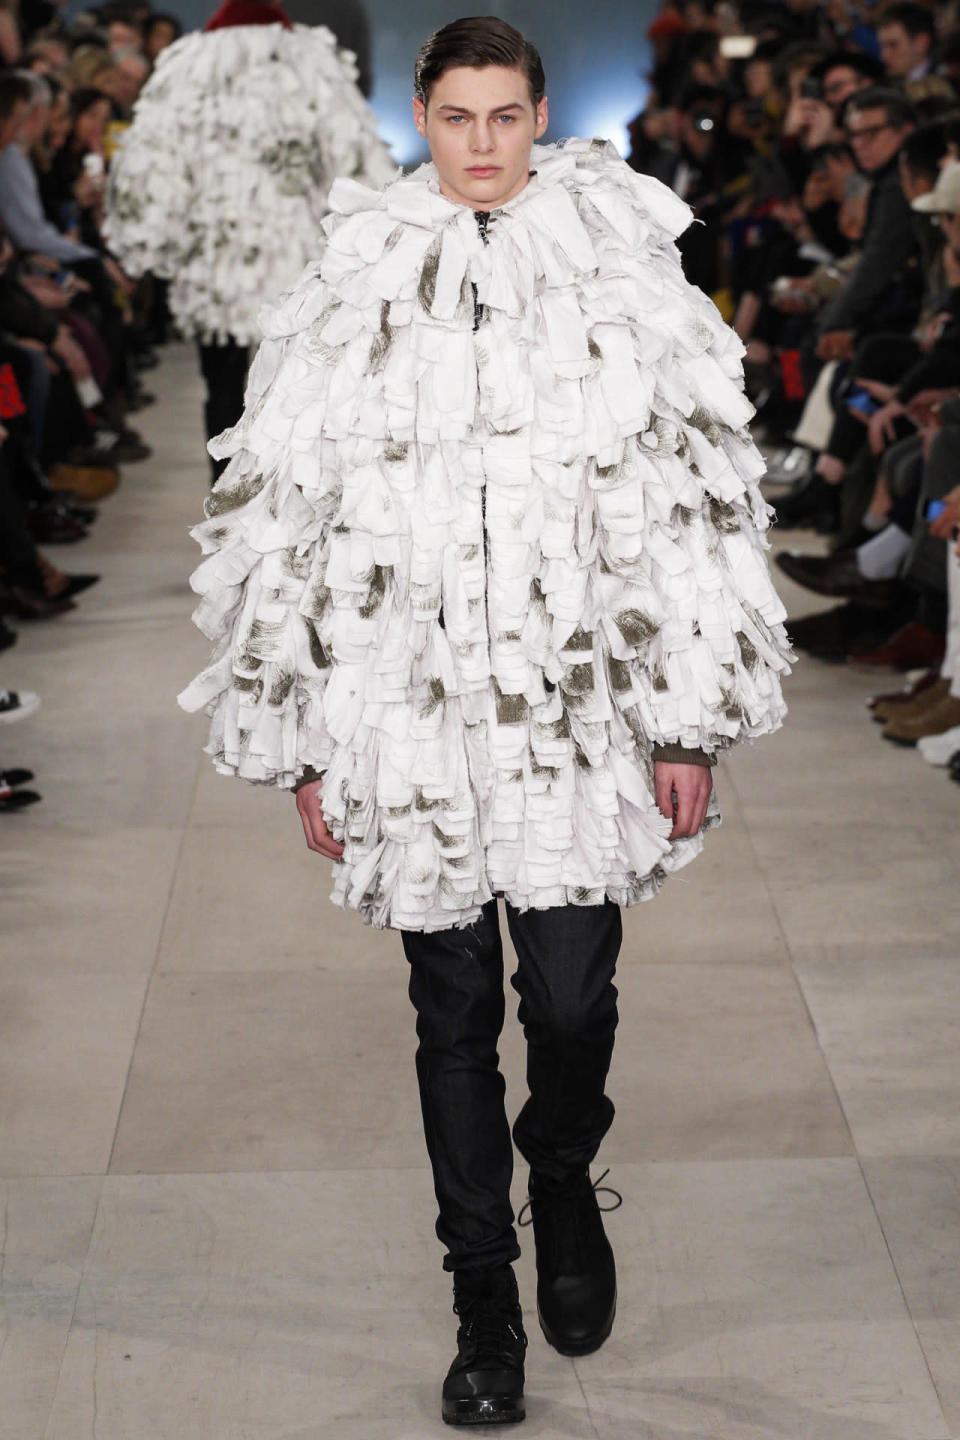 <p>For his finale looks designer, Christopher Raeburn used recycled army snow parkas that created an unusual silloulette that could have been mistaken for a Sesame Street character.<i> Photo: Getty Images</i></p>